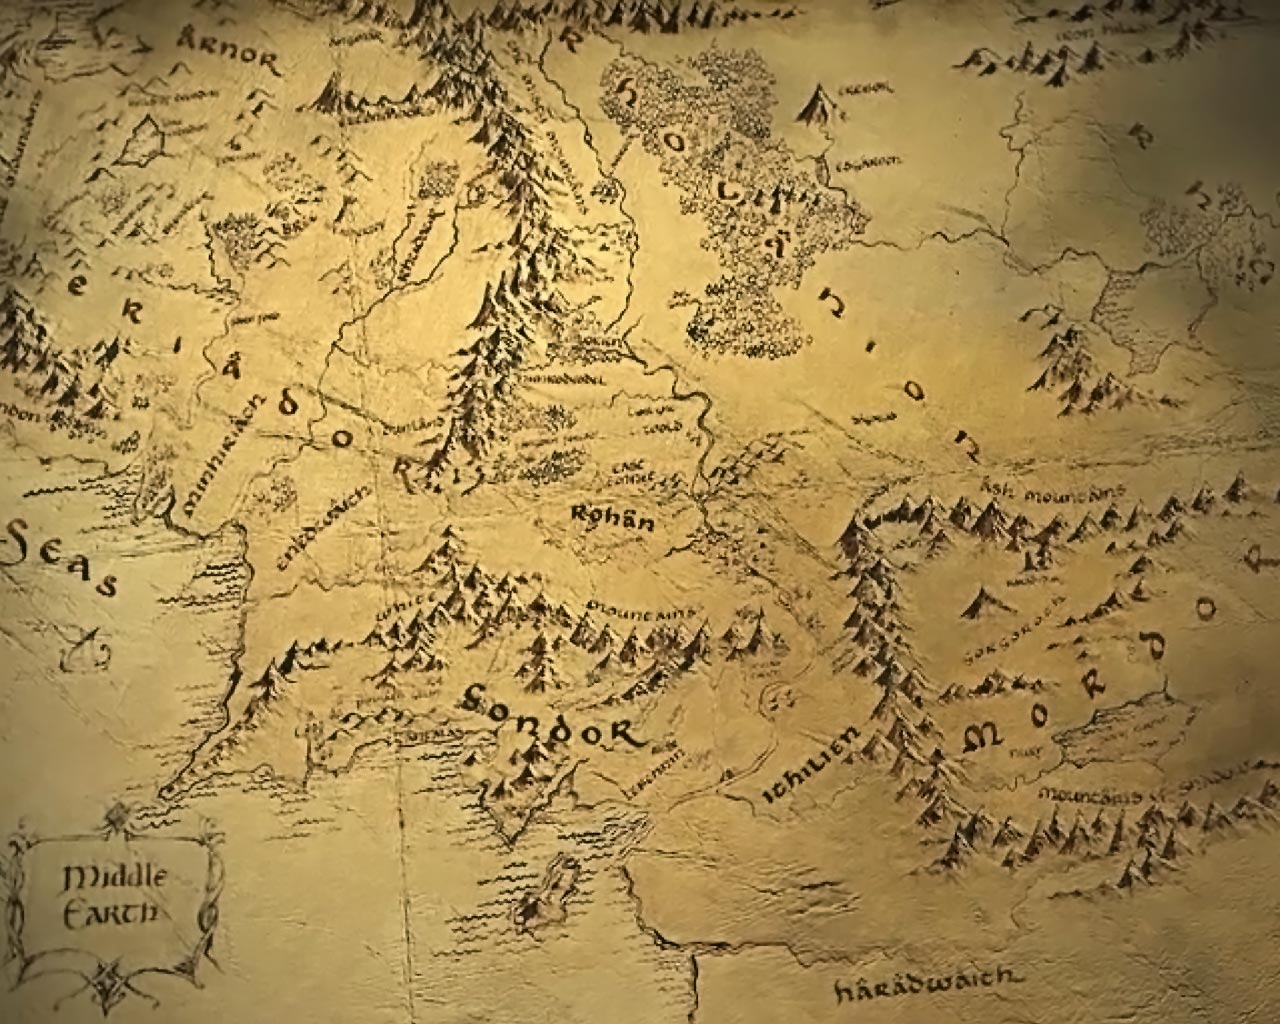 Maps Update 32002400 Large Middle Earth Map Map of Middle – Lord of the Rings Map of Middle Earth